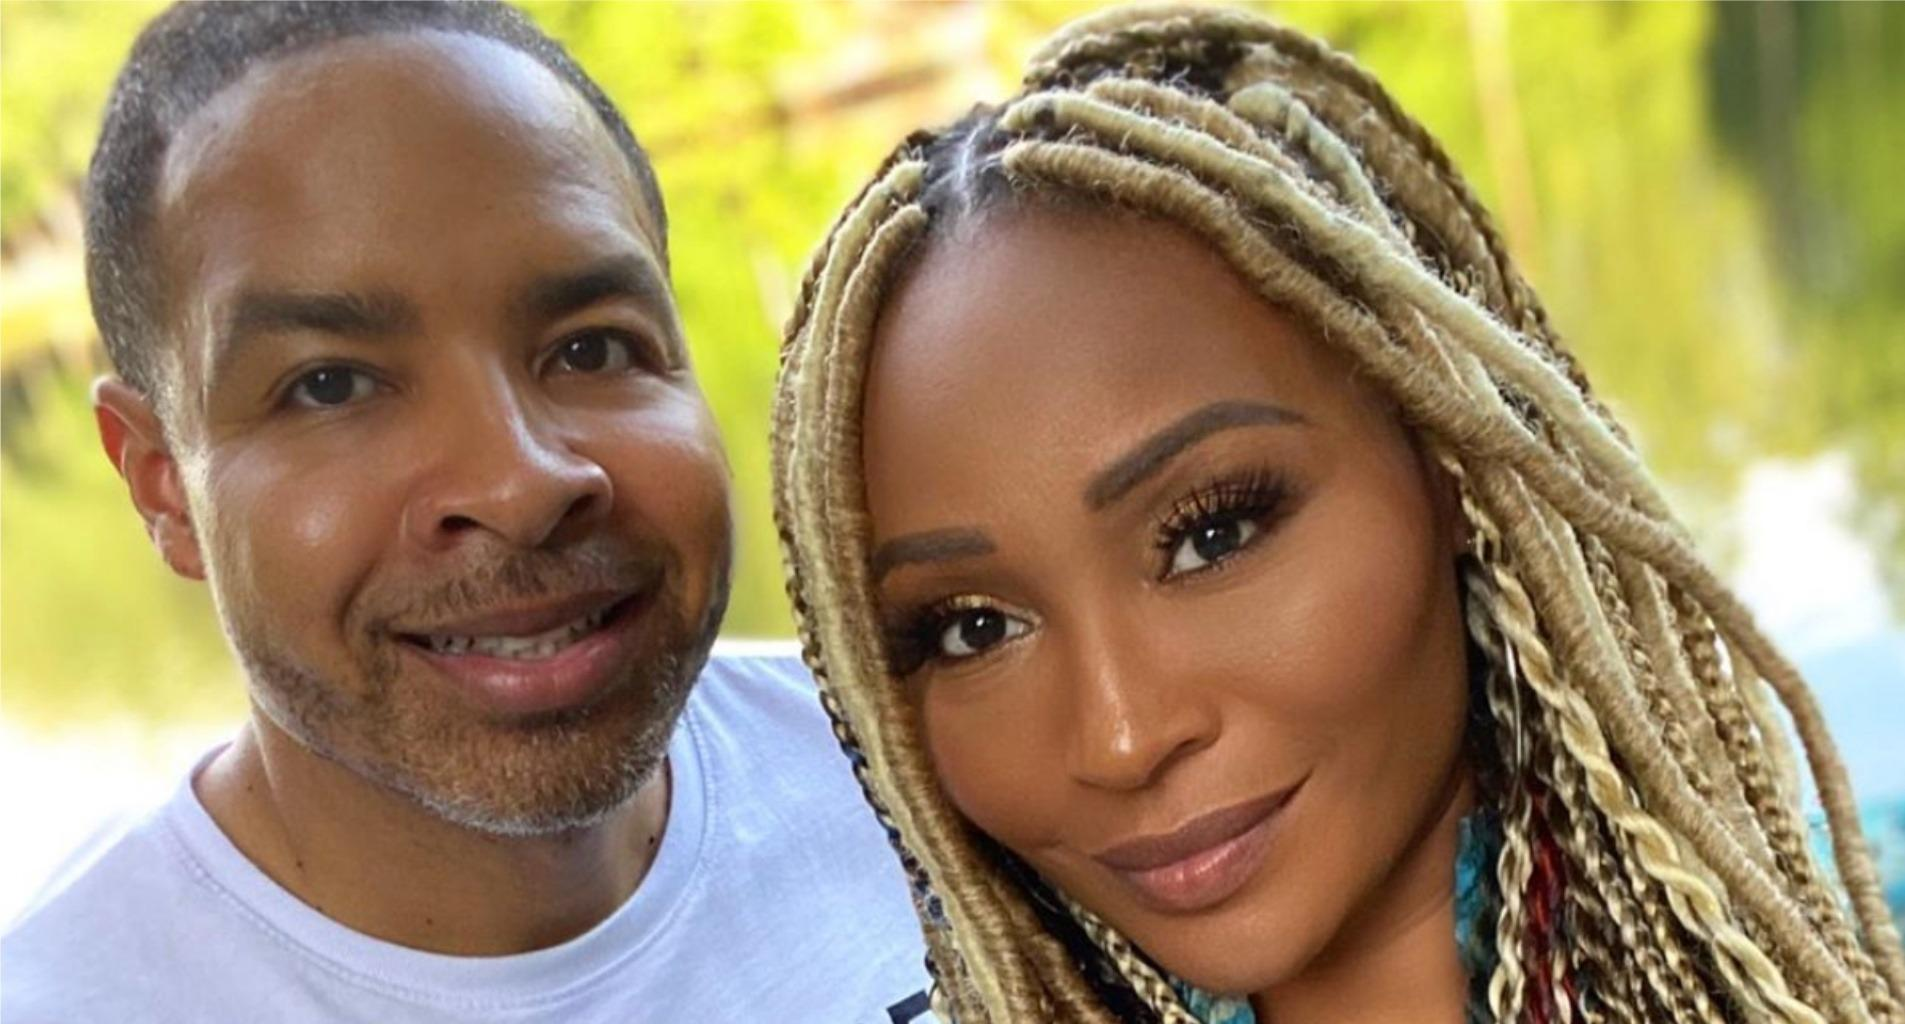 Cynthia Bailey Shows Off Her Flawless Figure On Vacay - See Her Pics At The Beach